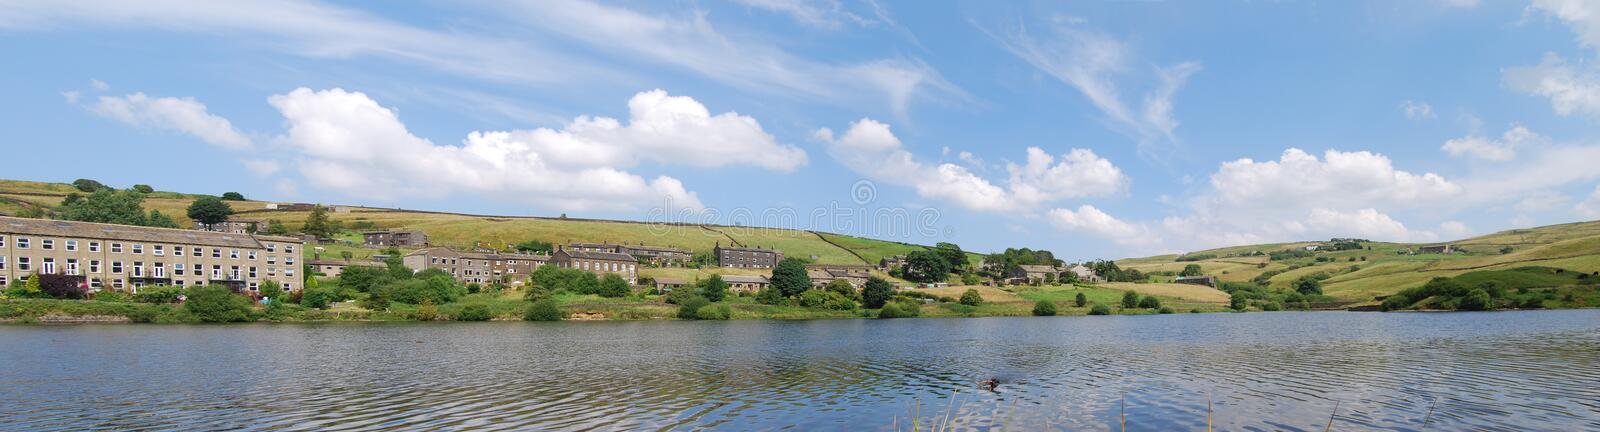 Download Yorkshire Panorama stock photo. Image of countryside - 12028286